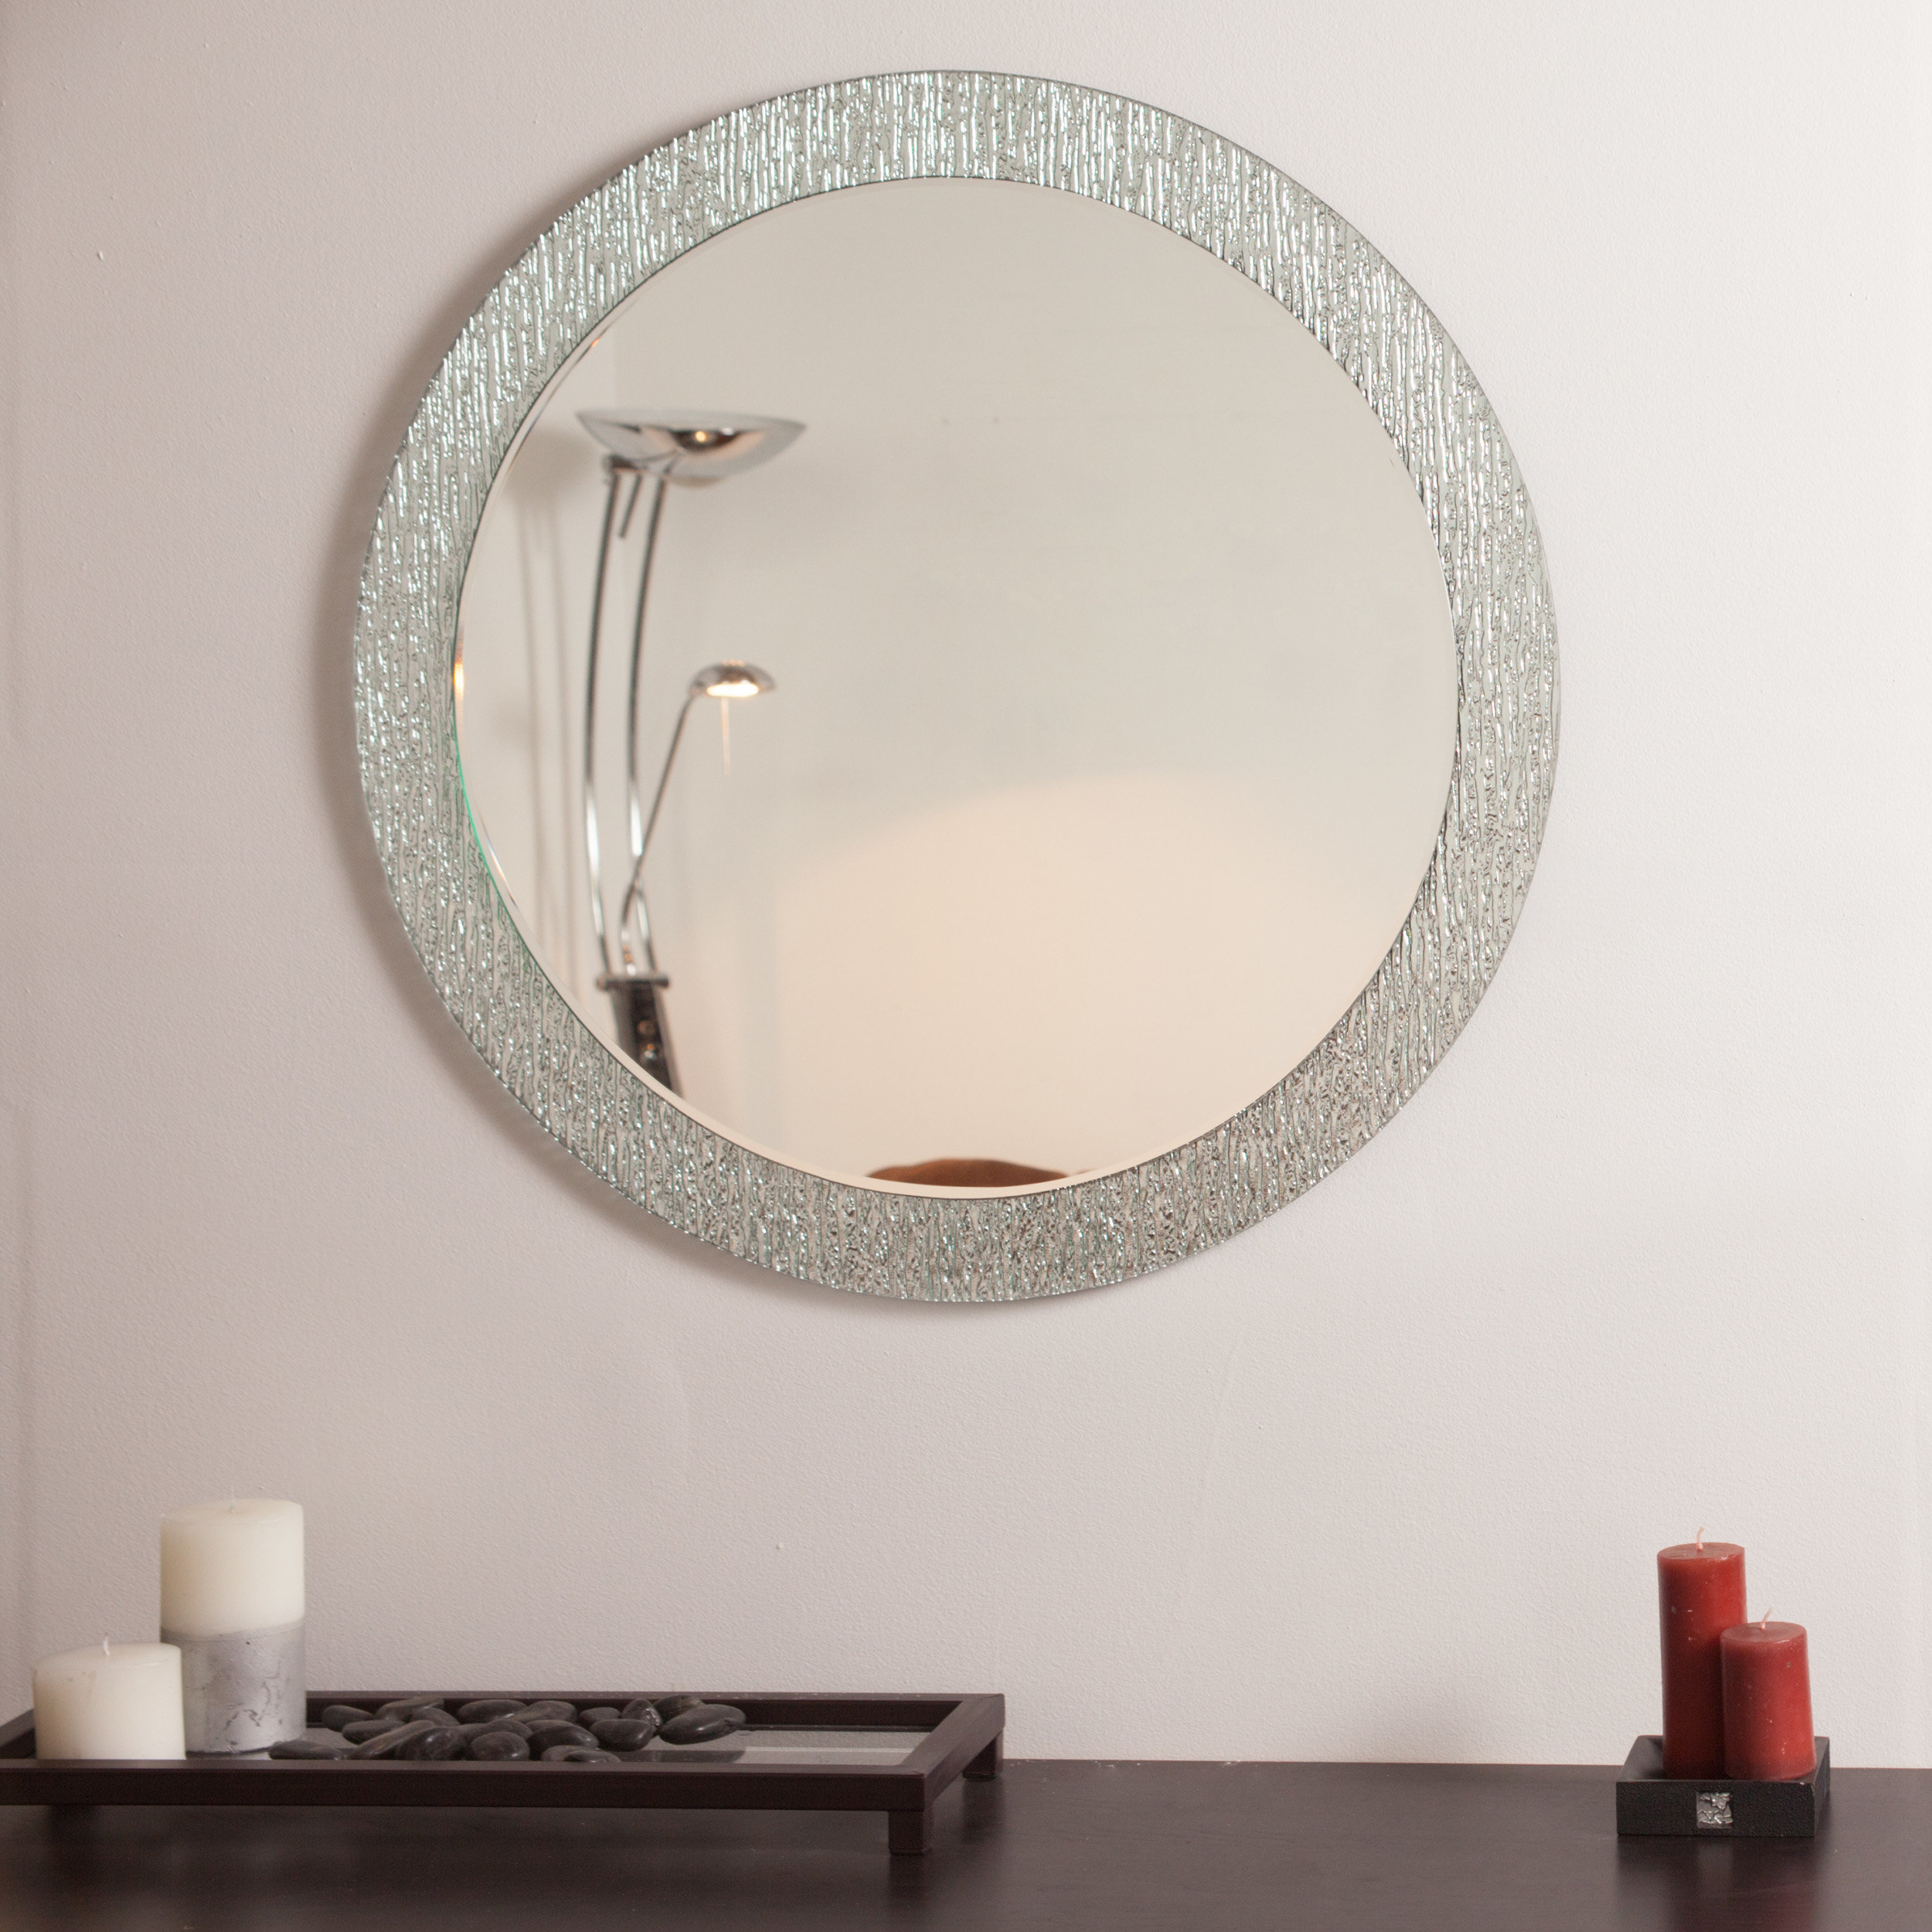 Point Reyes Molten Round Wall Mirror & Reviews | Joss & Main pertaining to Point Reyes Molten Round Wall Mirrors (Image 17 of 30)